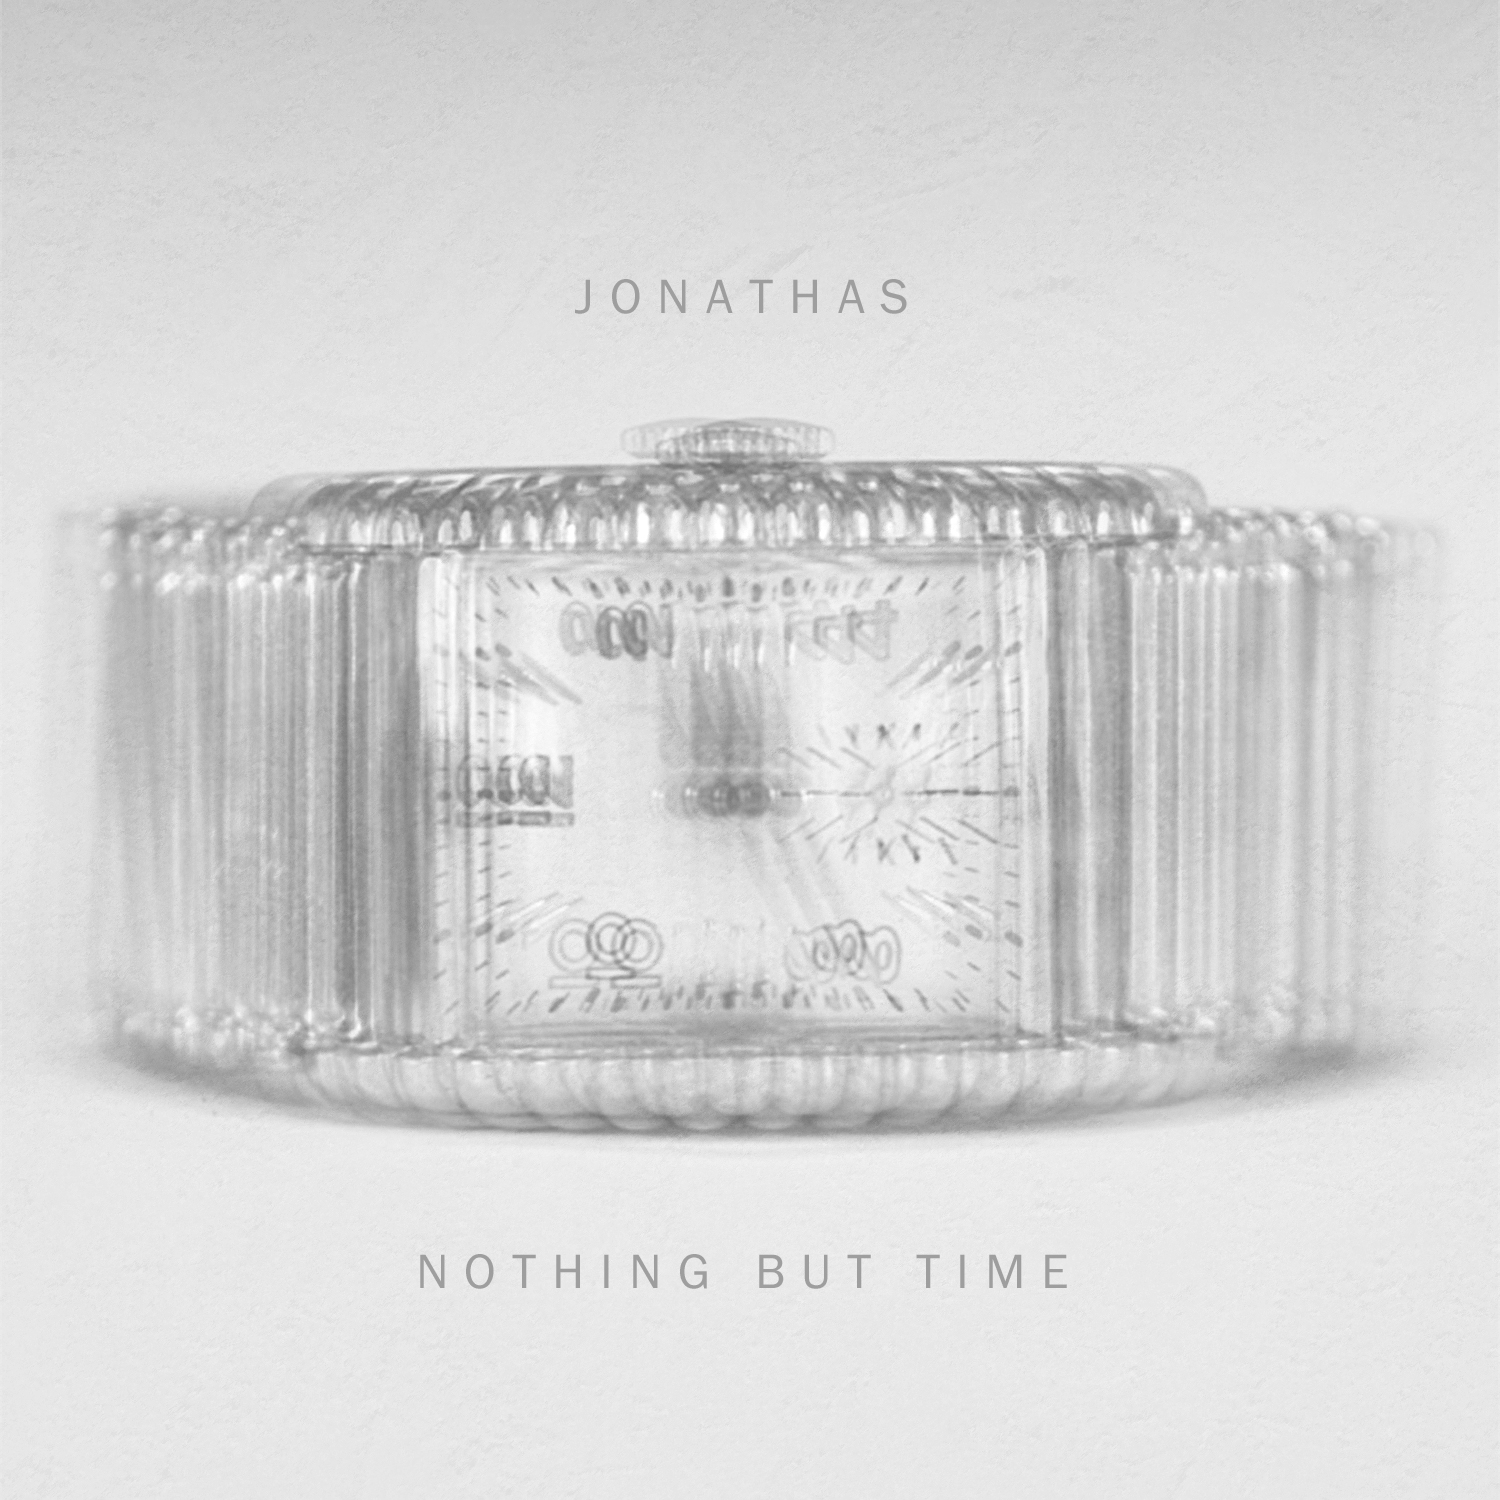 Jonathas Brainofbmw Music